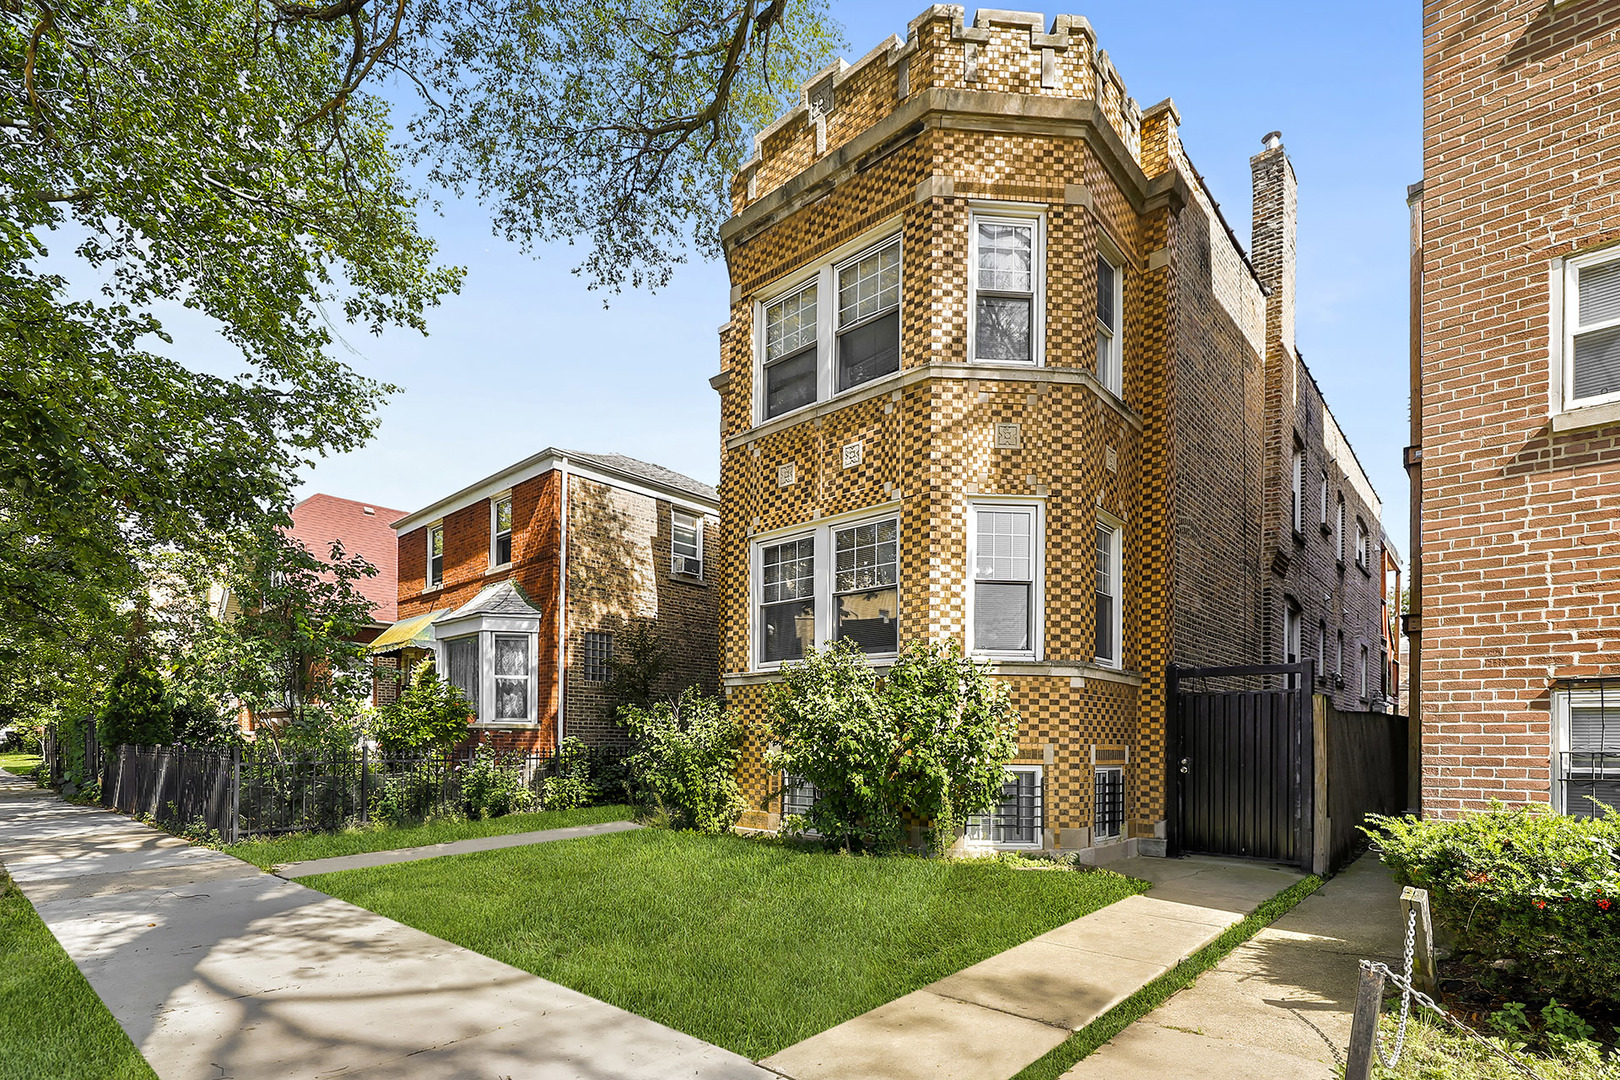 One of North Park Chicago 3 Bedroom Homes for Sale at 6025 North Fairfield Avenue